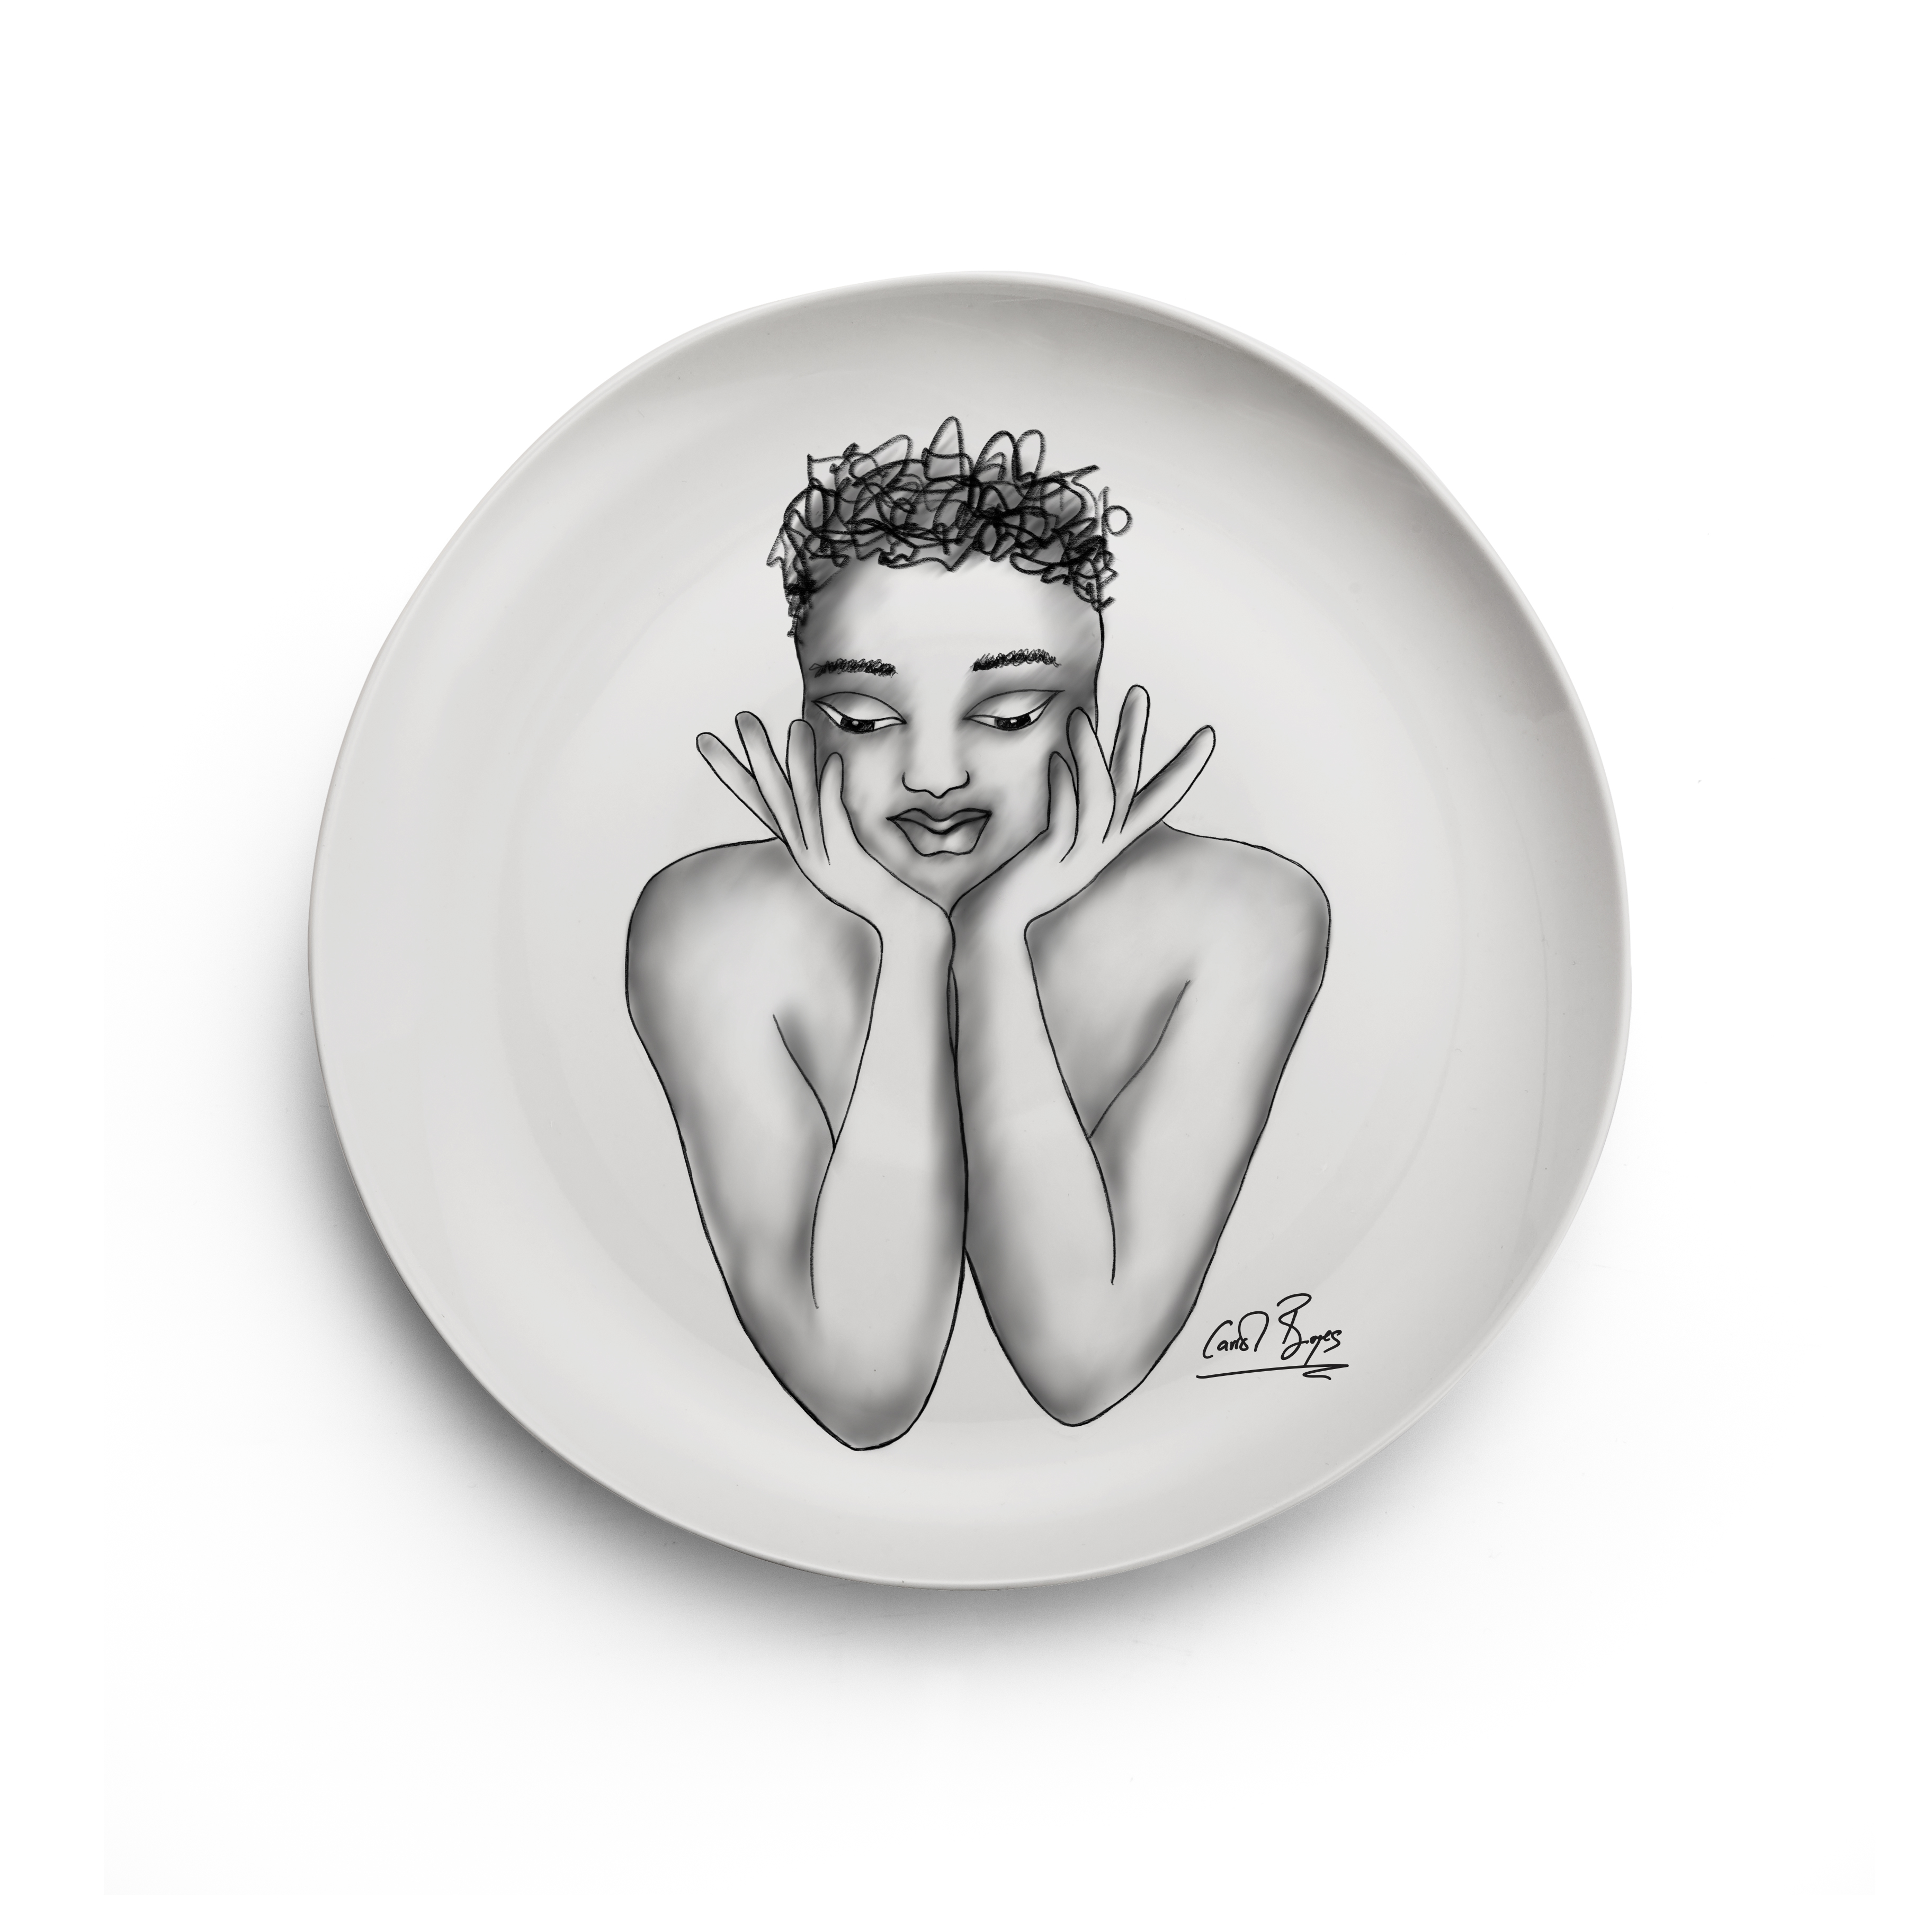 SIDE PLATE - fascinating